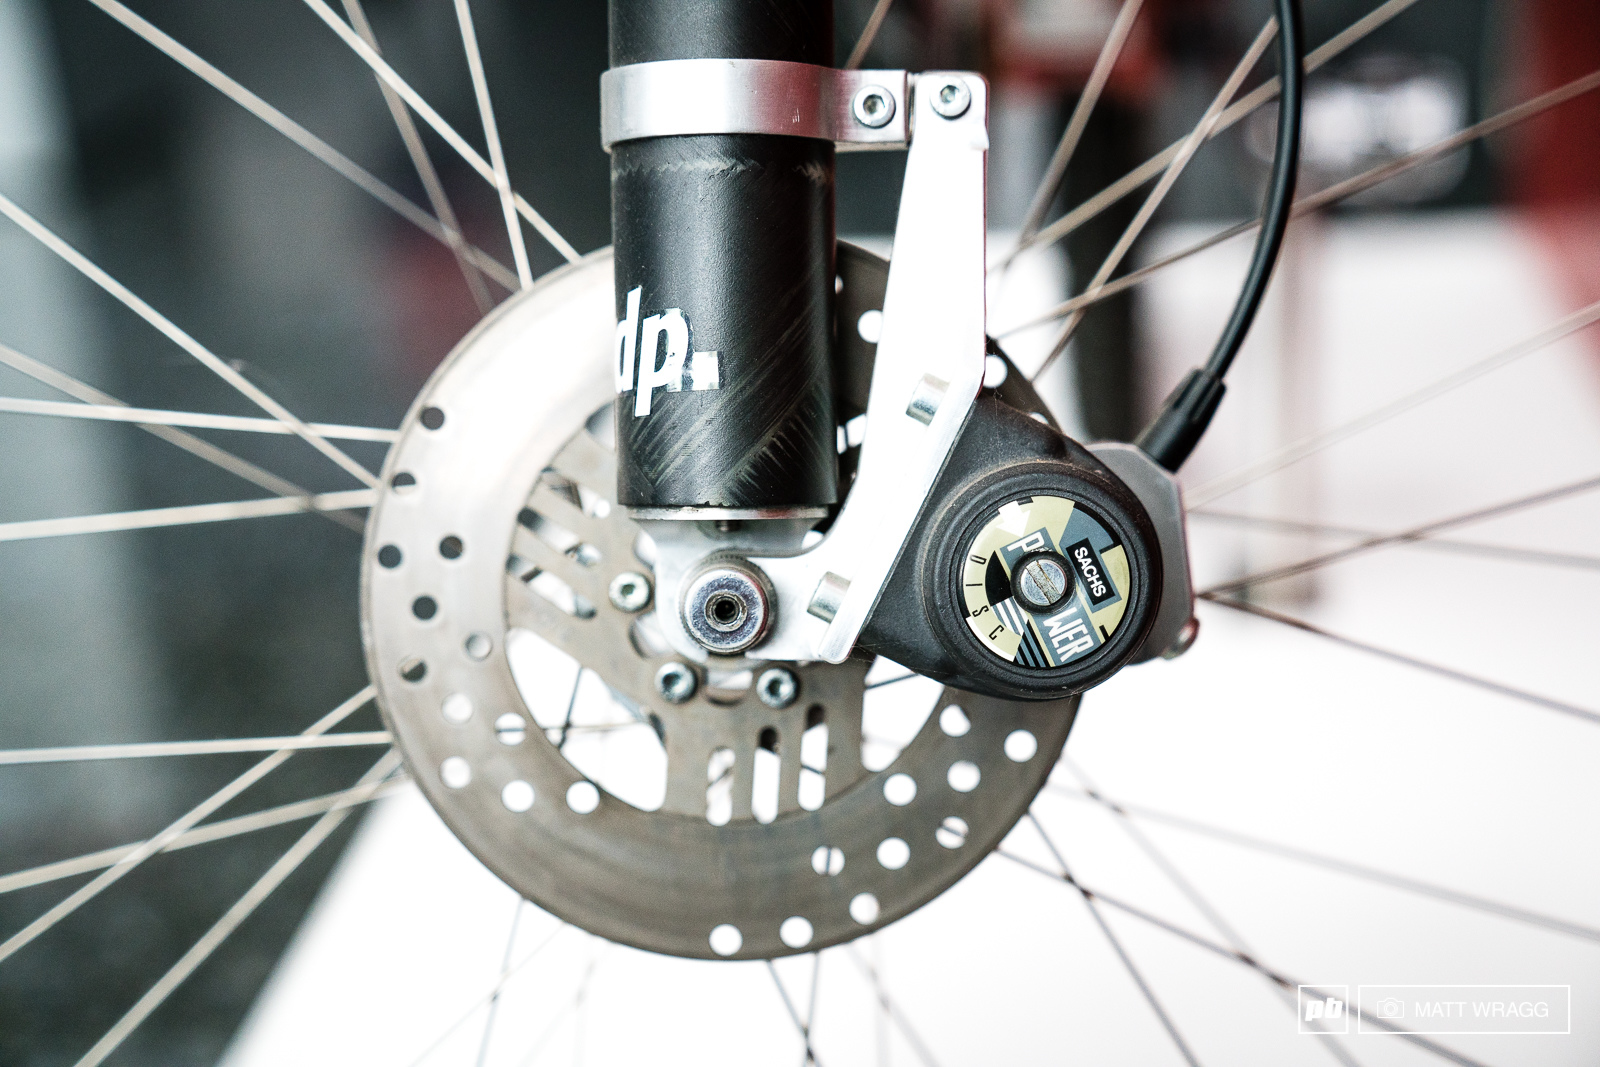 They were keen on the idea of disc brakes although these Sachs brakes never really cught on. This was also a time before standardised brake mounts - so check out the custom mounting solution.